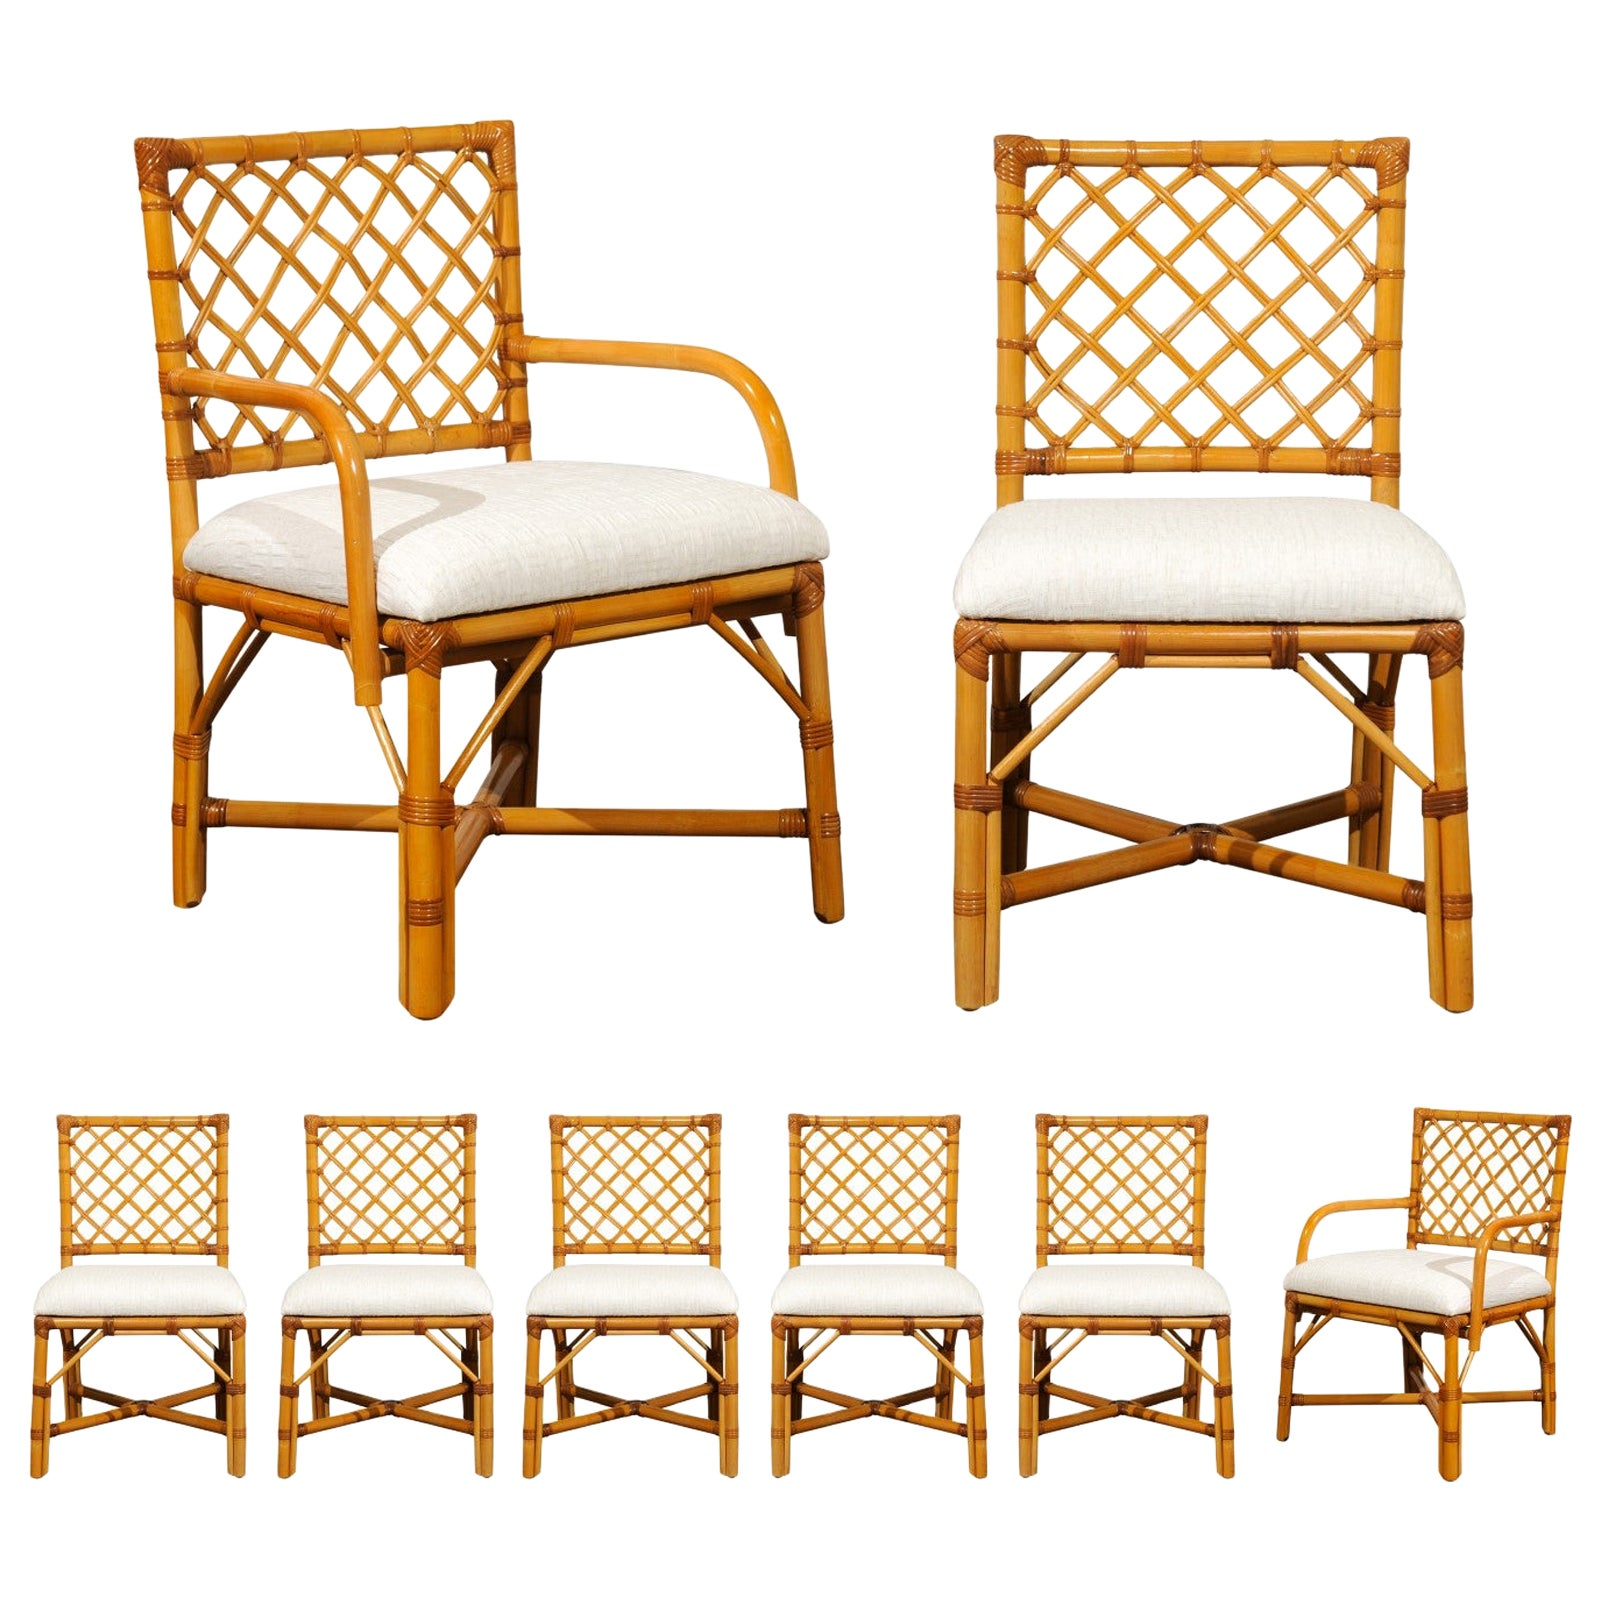 Fabulous Set of 8 Rattan and Cane Dining Chairs by Bielecky Brothers, circa 1975